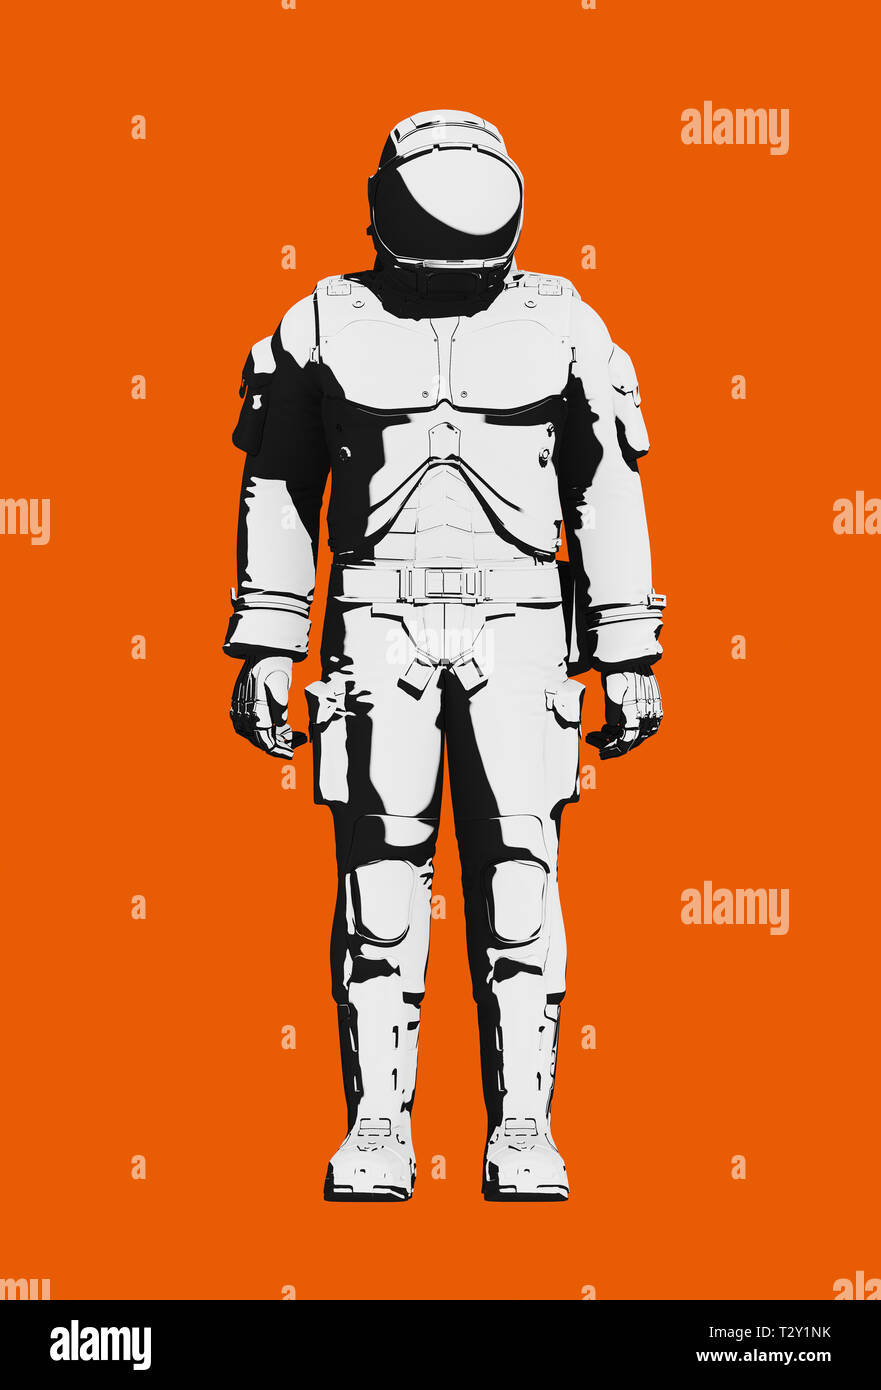 Astronaut space suit for extravehicular activity, functional design. Black and white on orange background. Front view, line art rendering digital illu Stock Photo